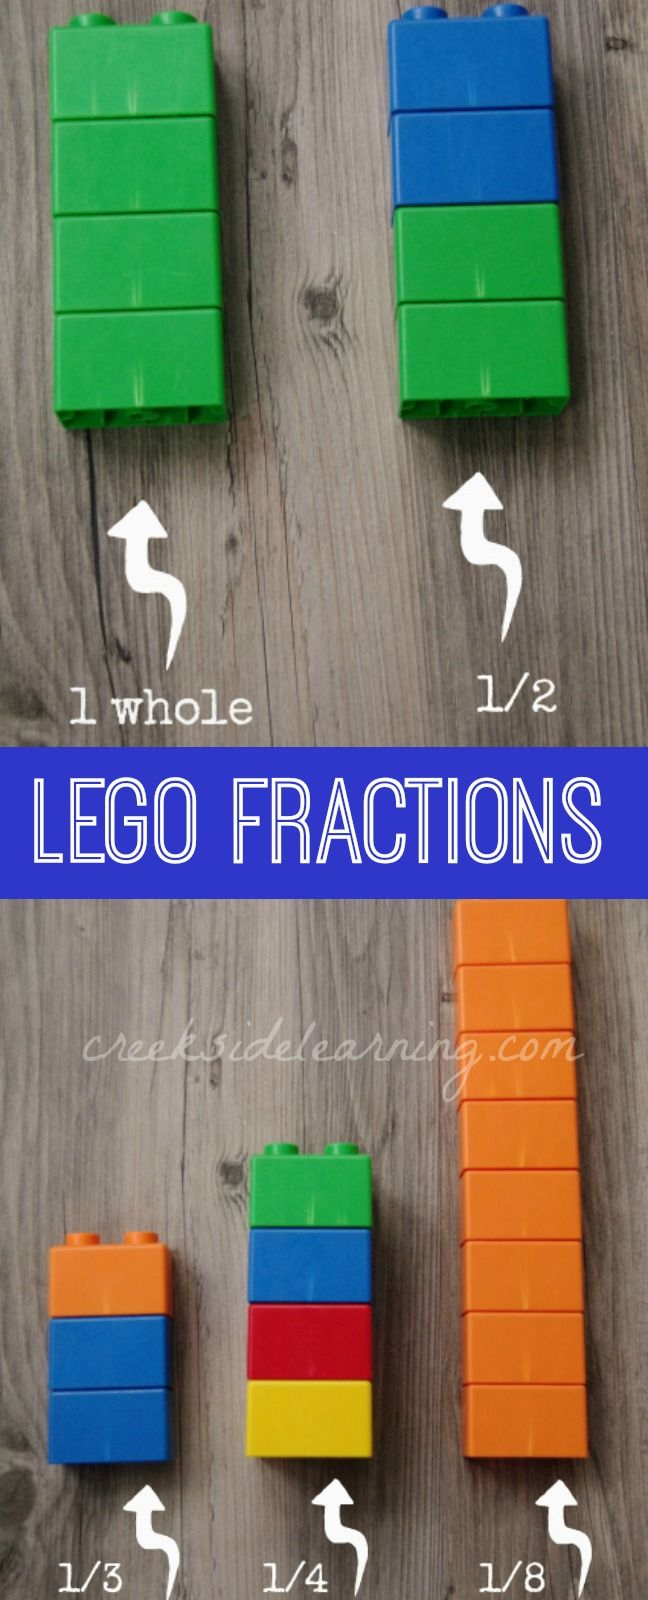 LEGO Fractions for Kindergarten and Preschool.